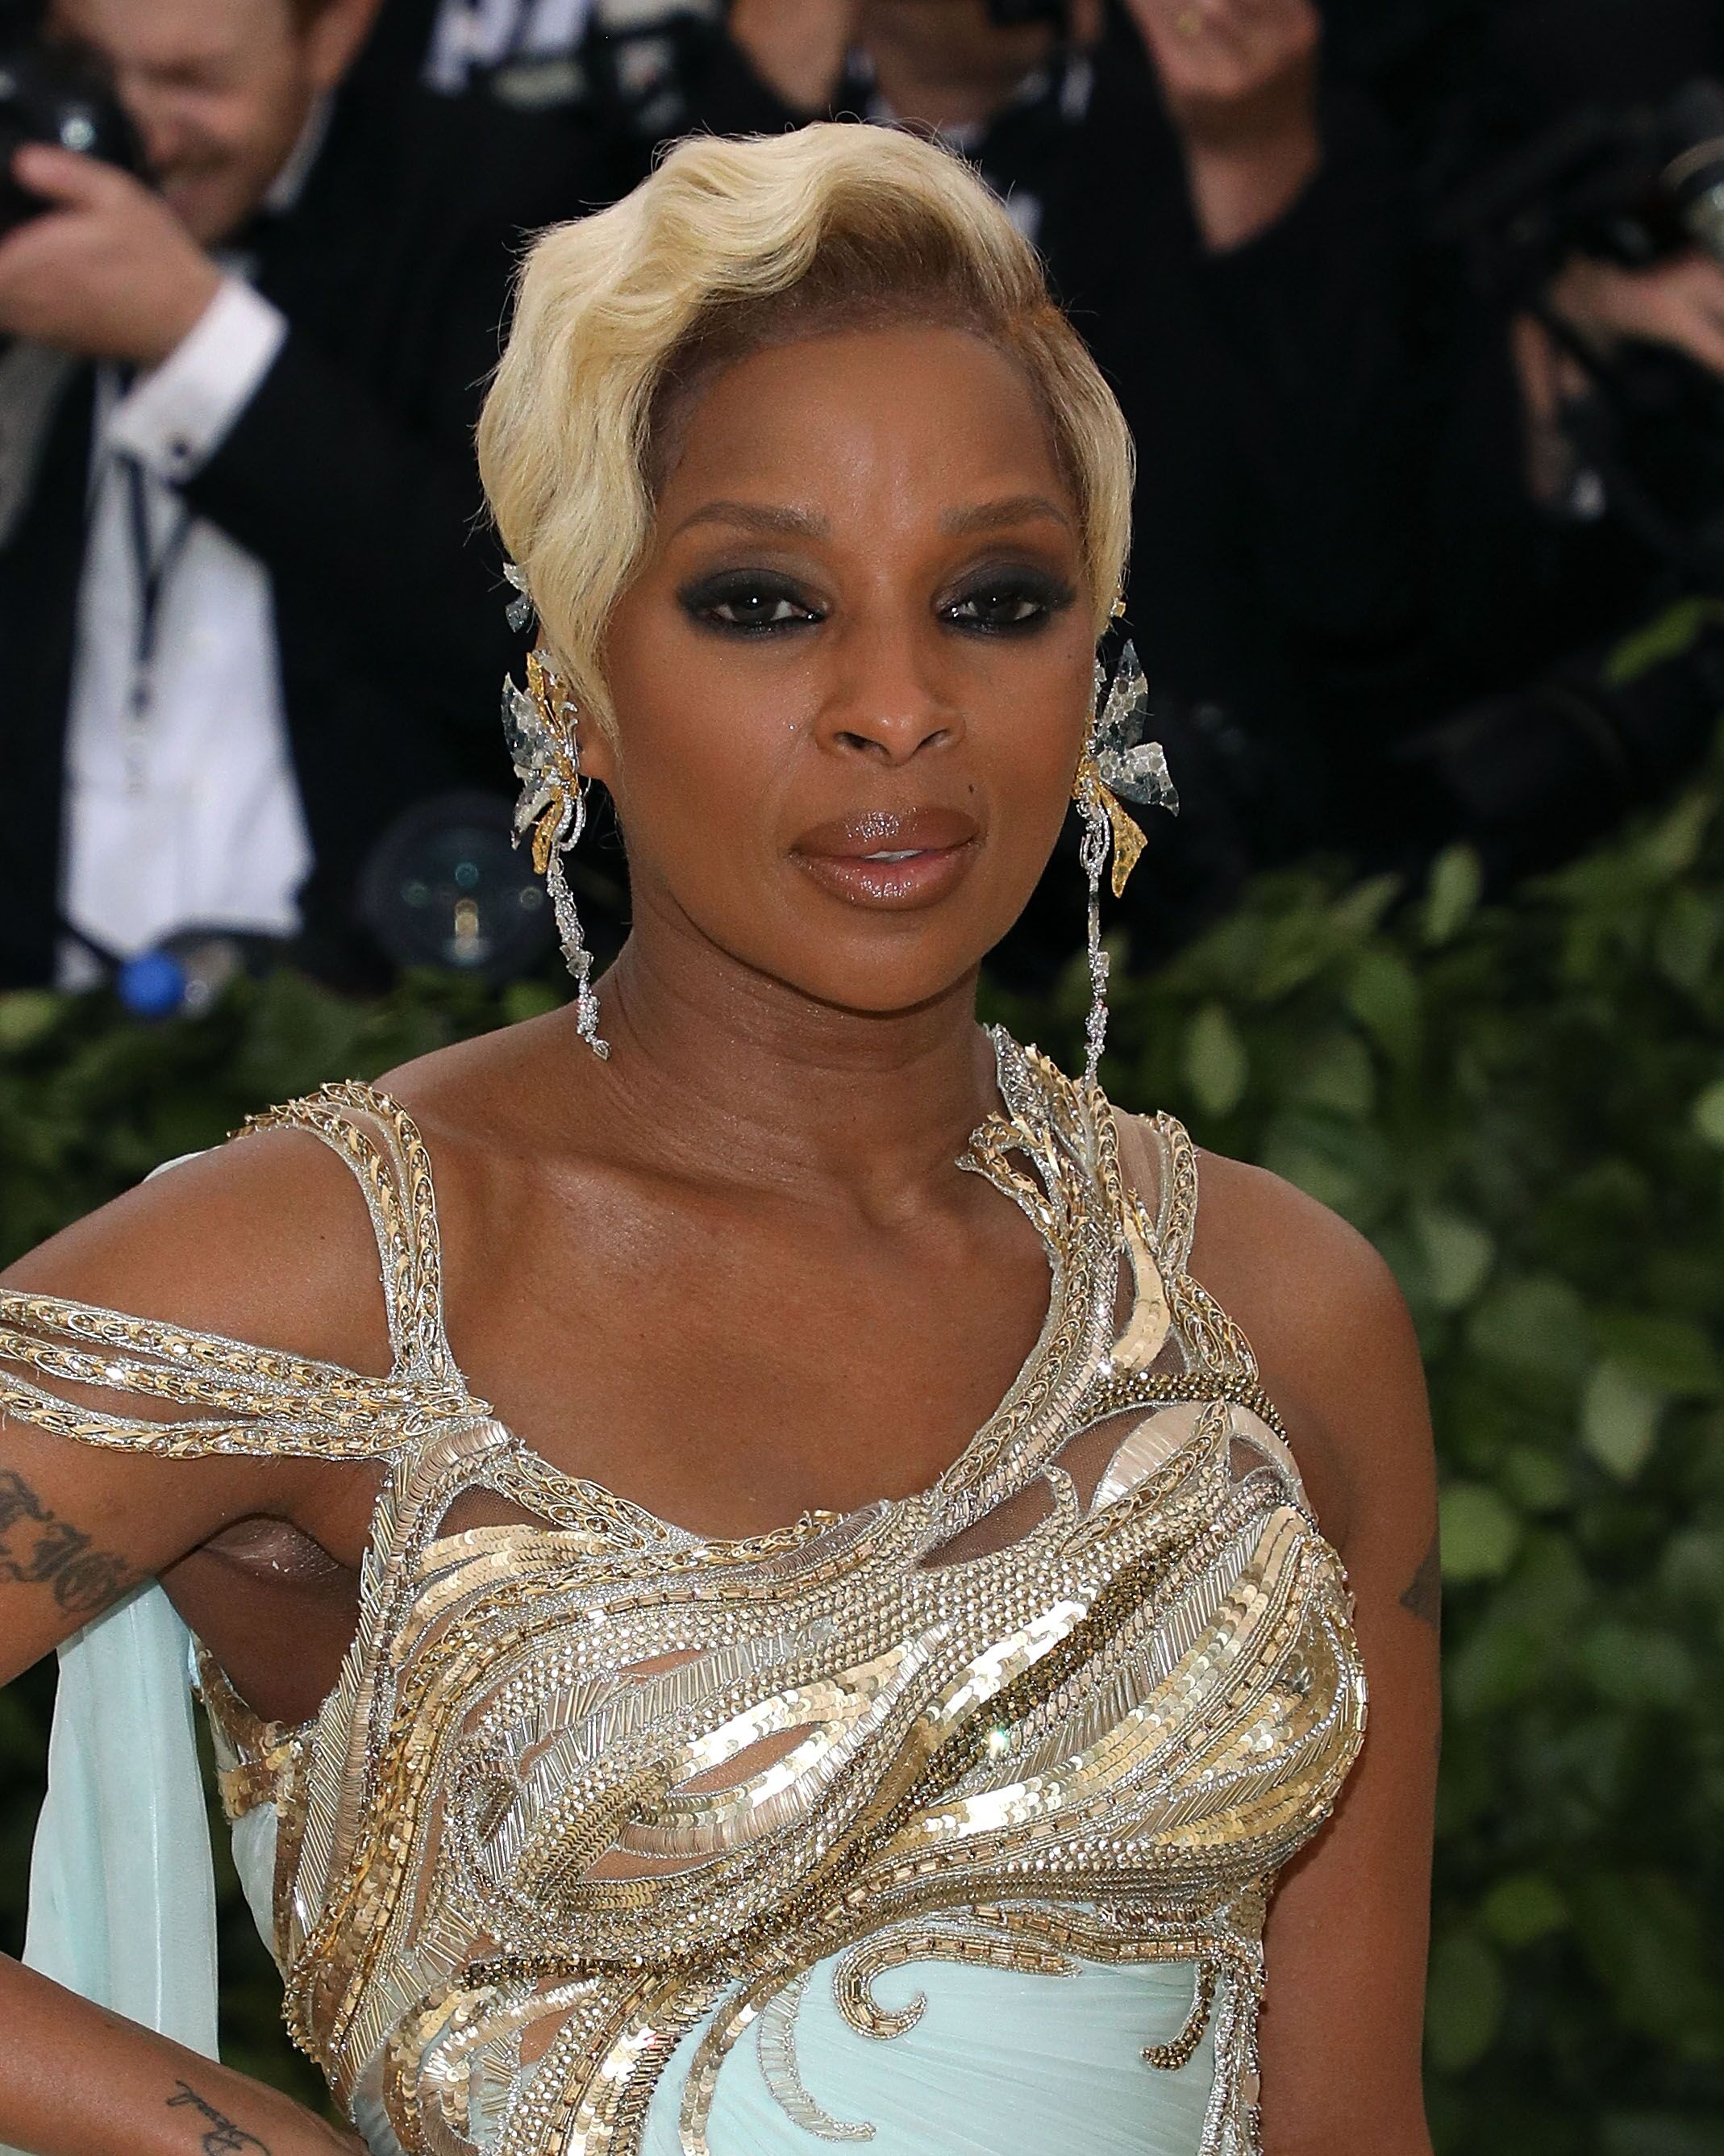 Mary J. Blige at the 2018 MET Gala/ Source: Getty Images